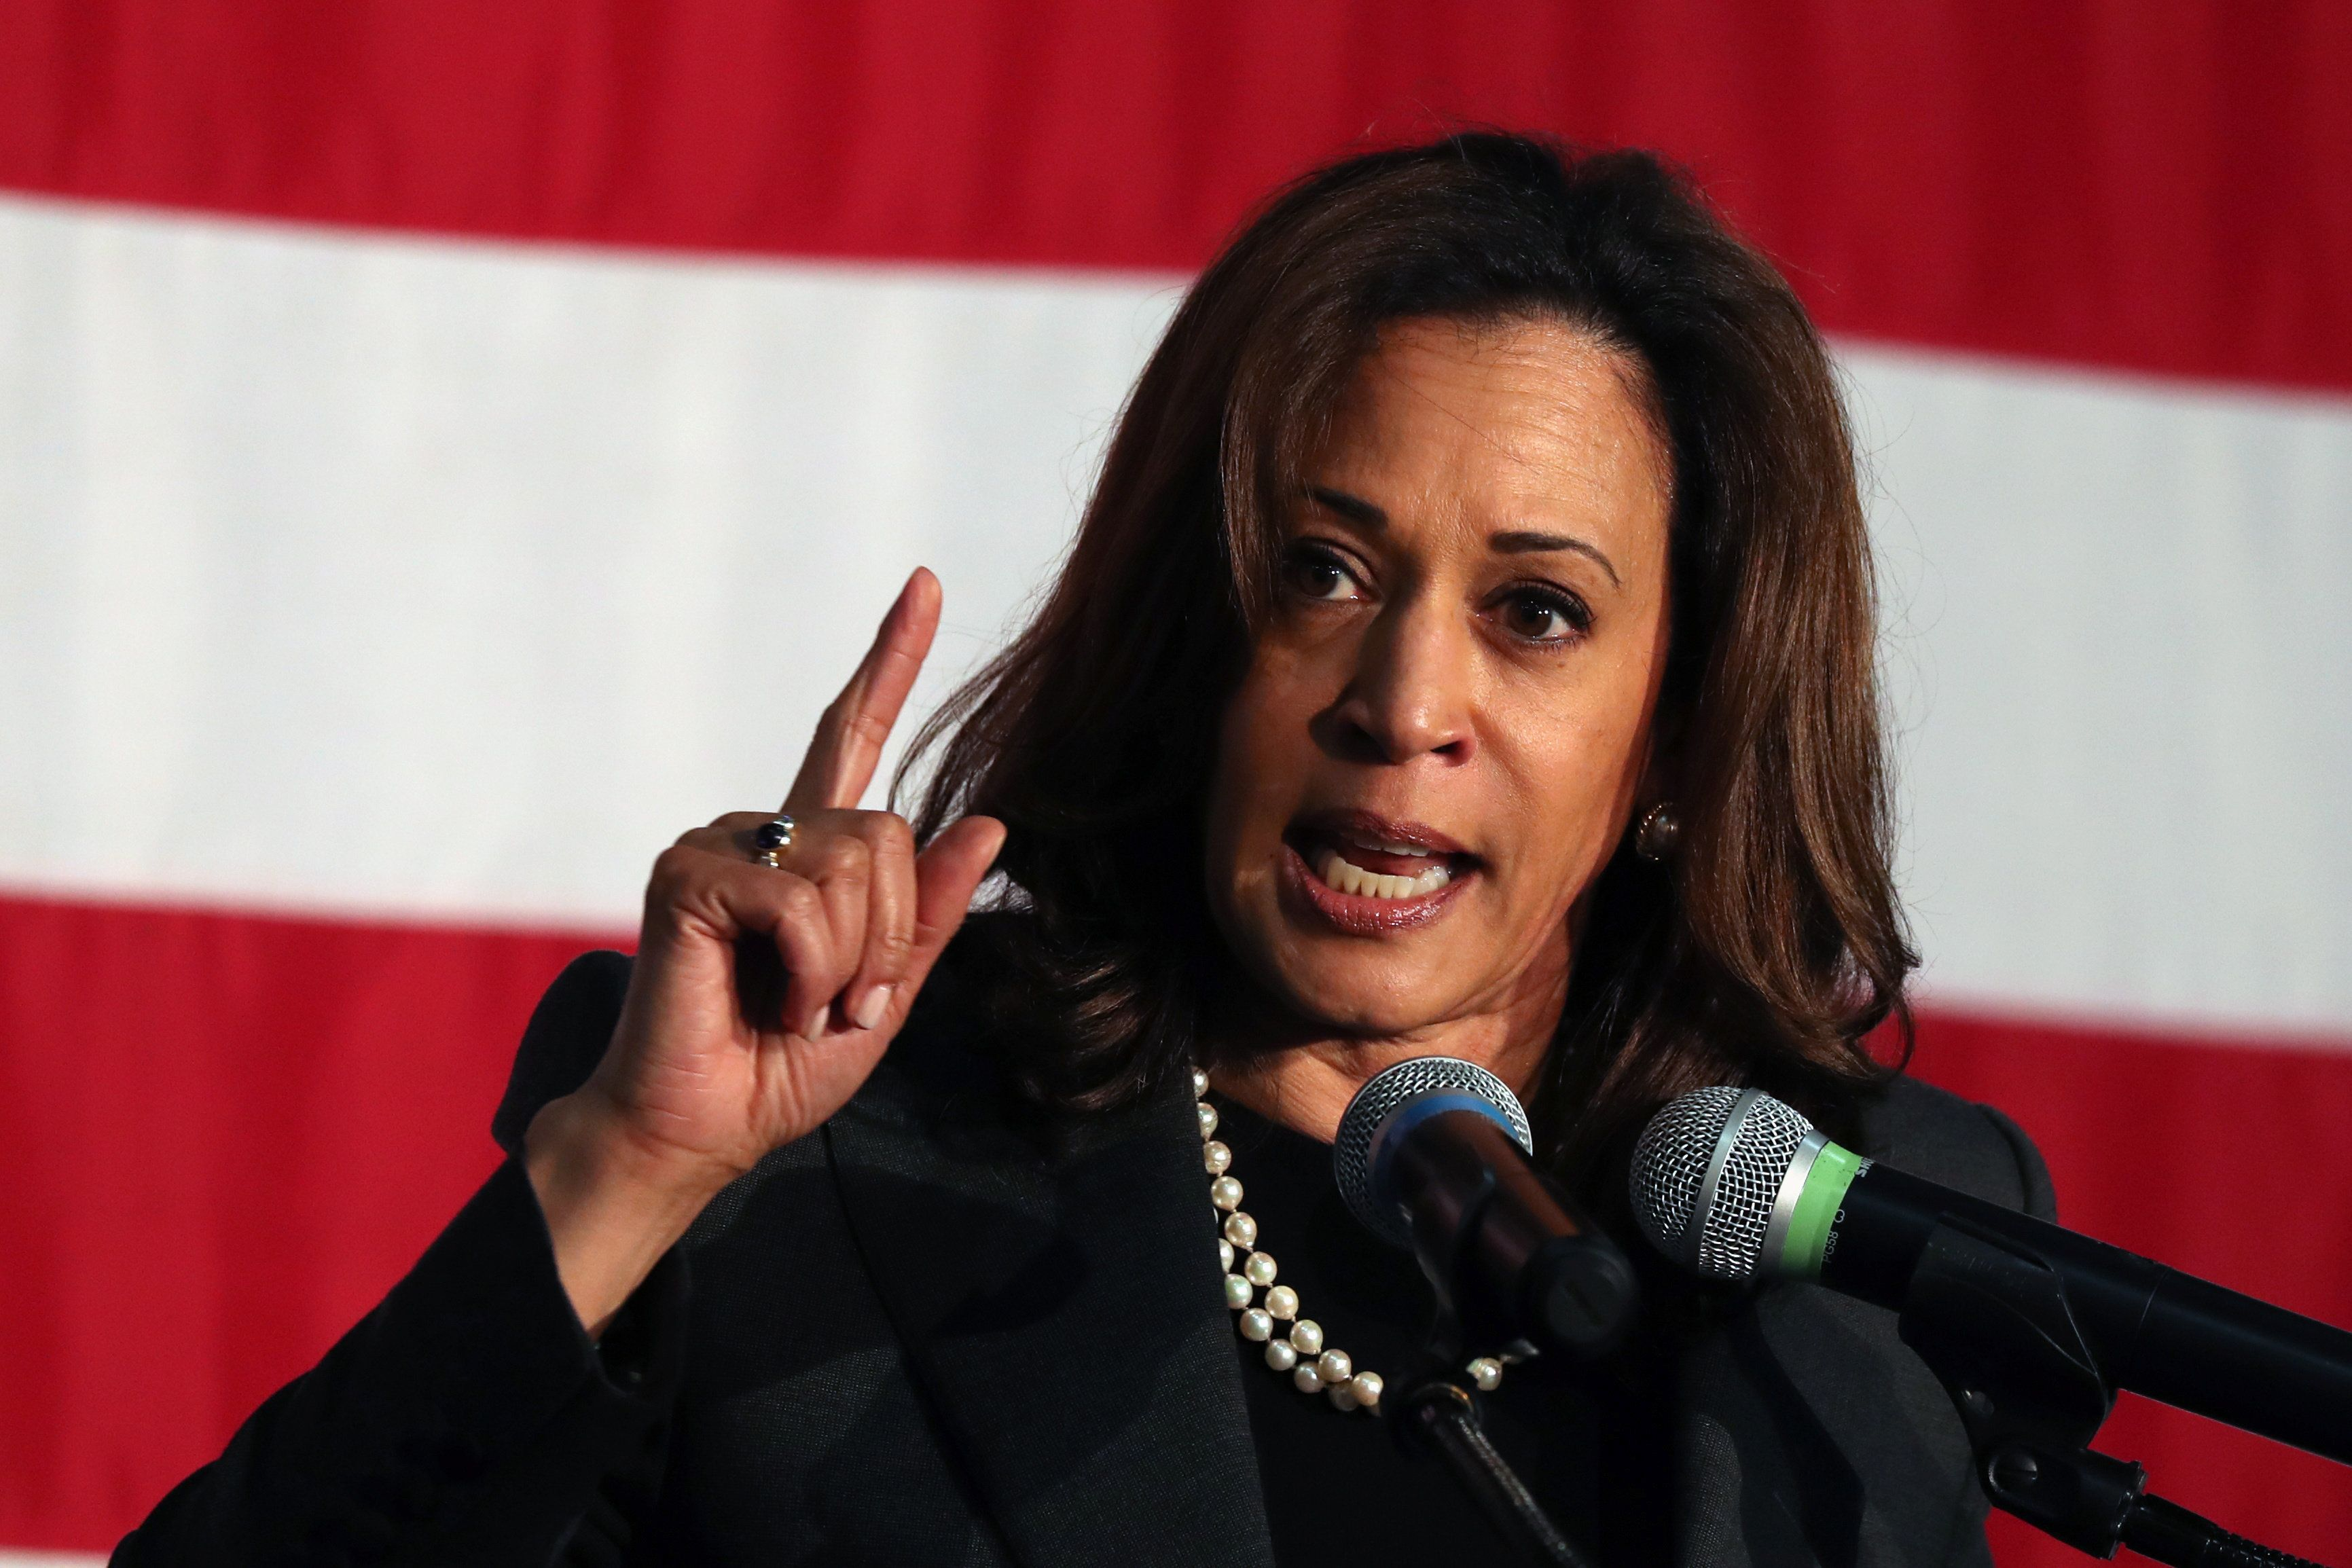 U.S. Senator Kamala D. Harris (D-CA) speaks at a campaign rally for California gubernatorial candidate Lieutenant Governor Gavin Newsom in Burbank, California, U.S. May 30, 2018. REUTERS/Lucy Nicholson